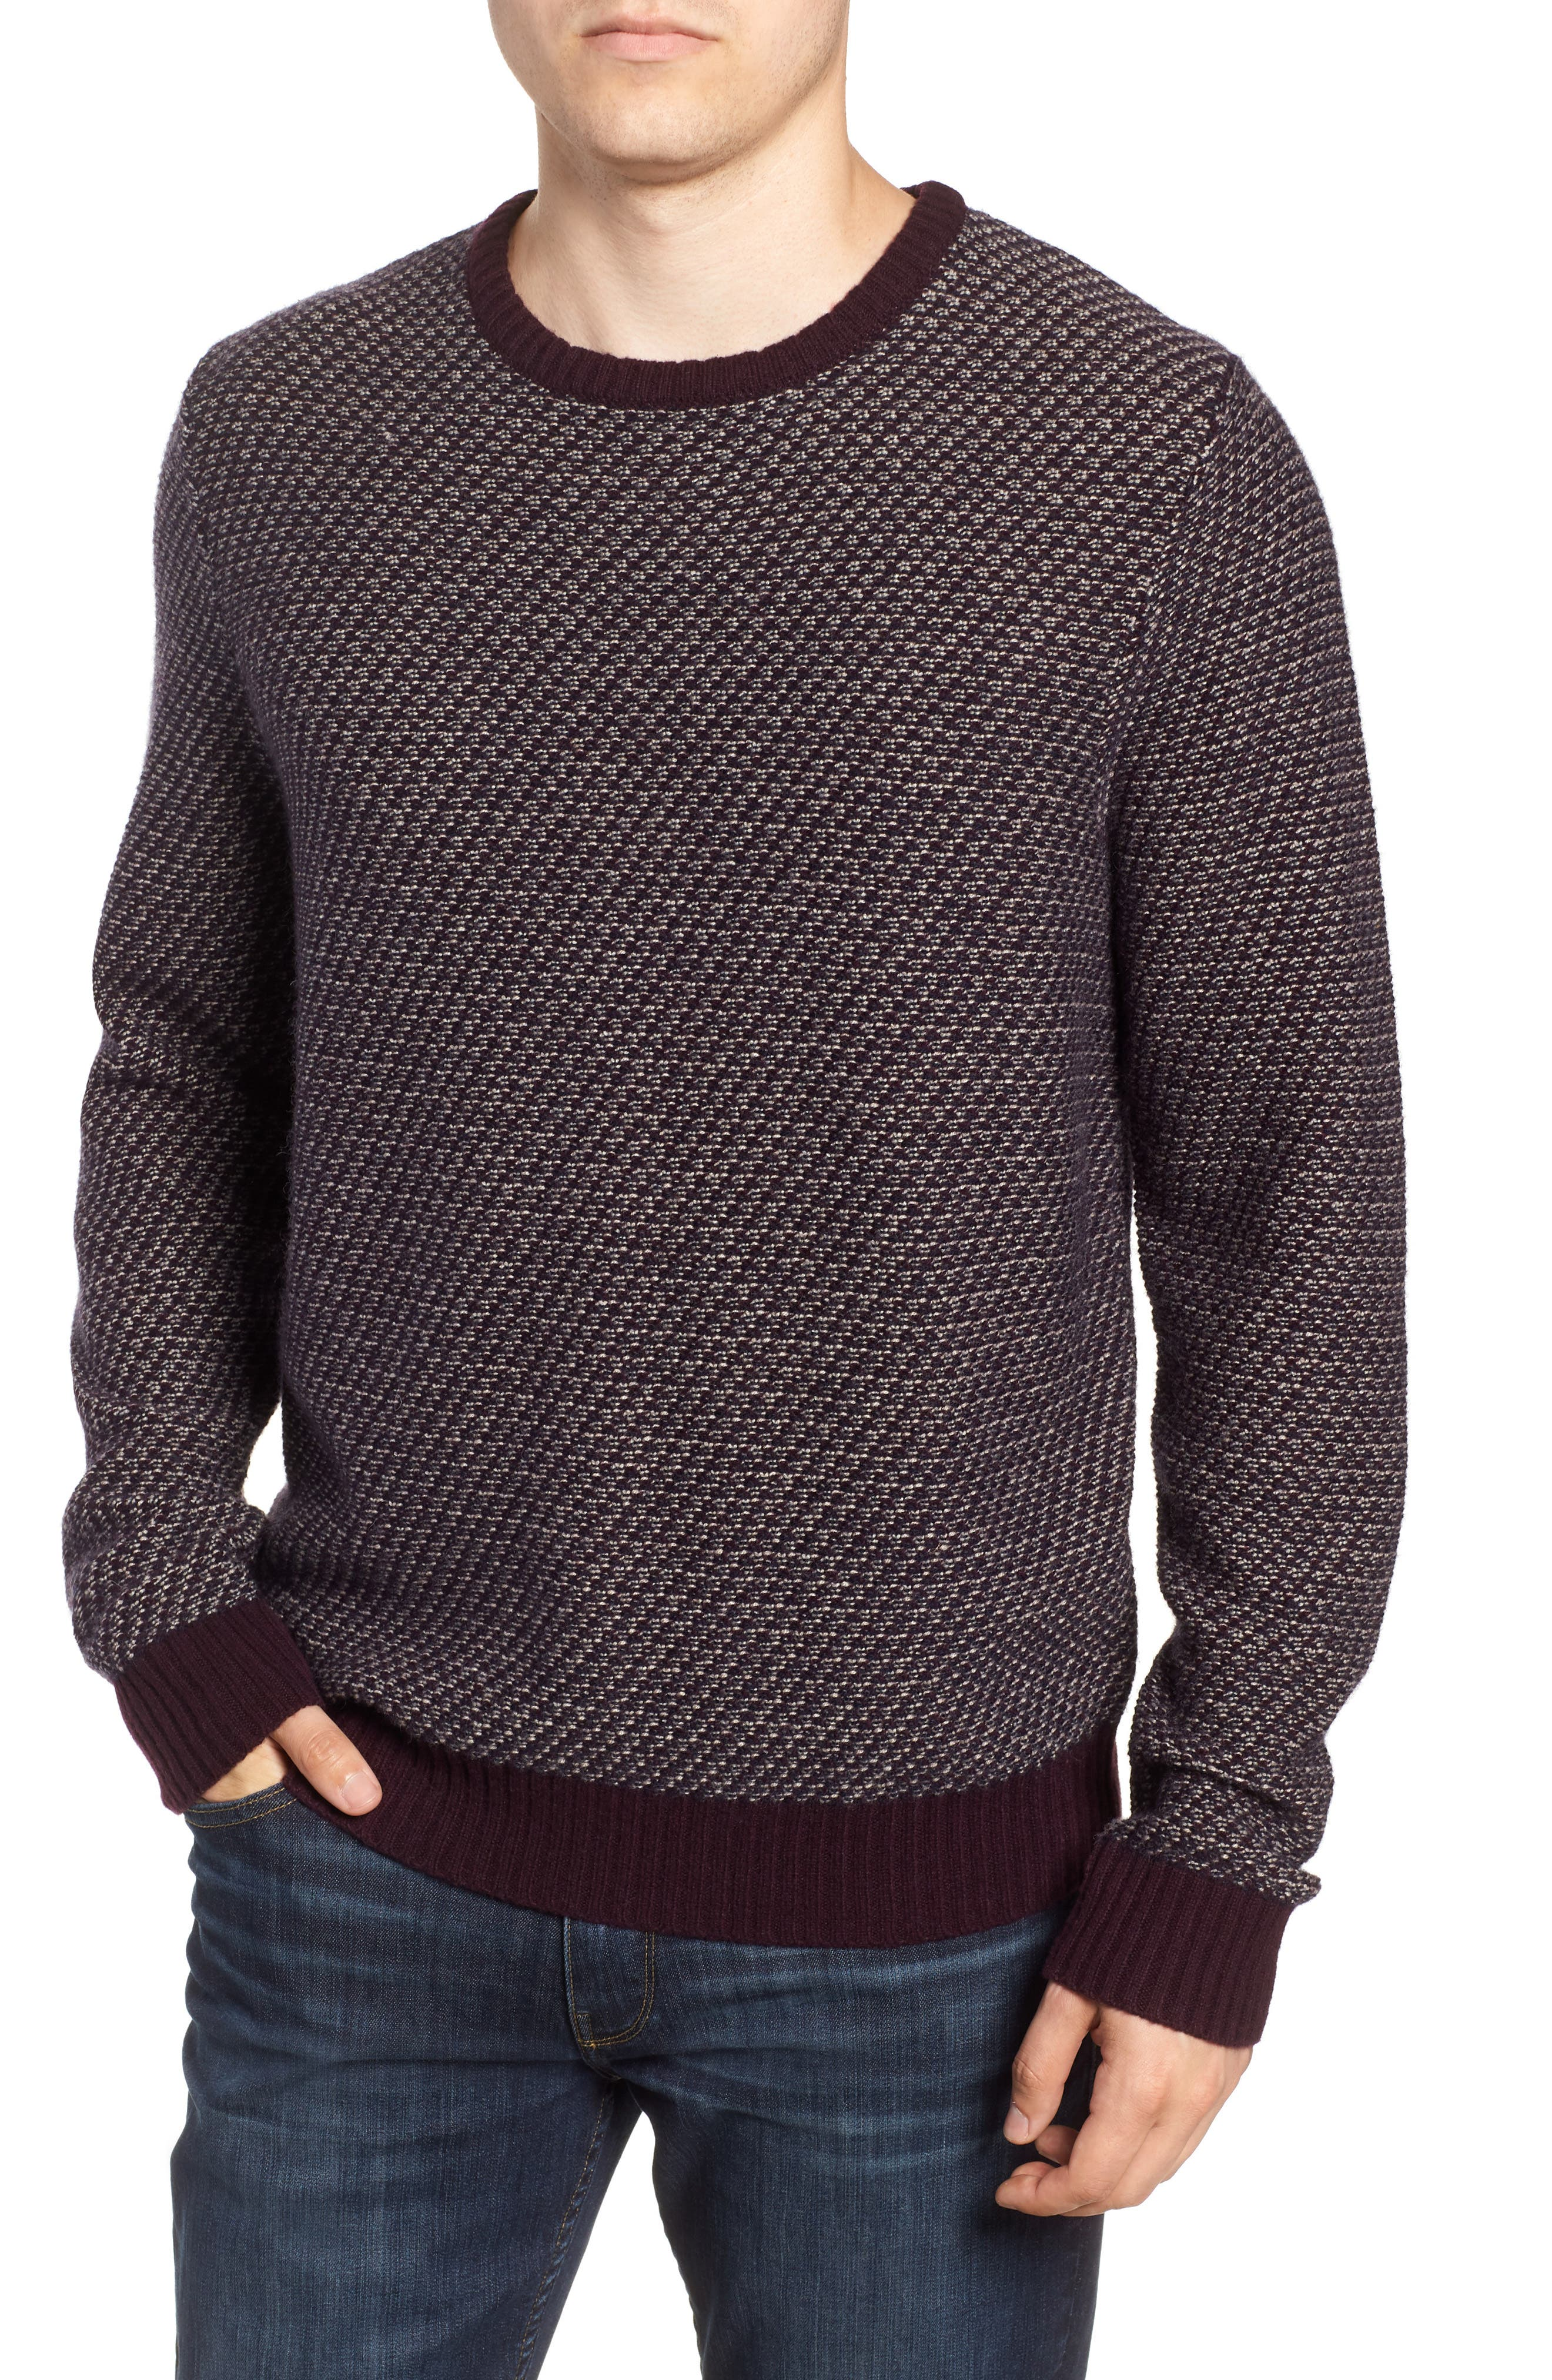 Nordstrom Shop Jacquard Wool & Cashmere Sweater, Burgundy